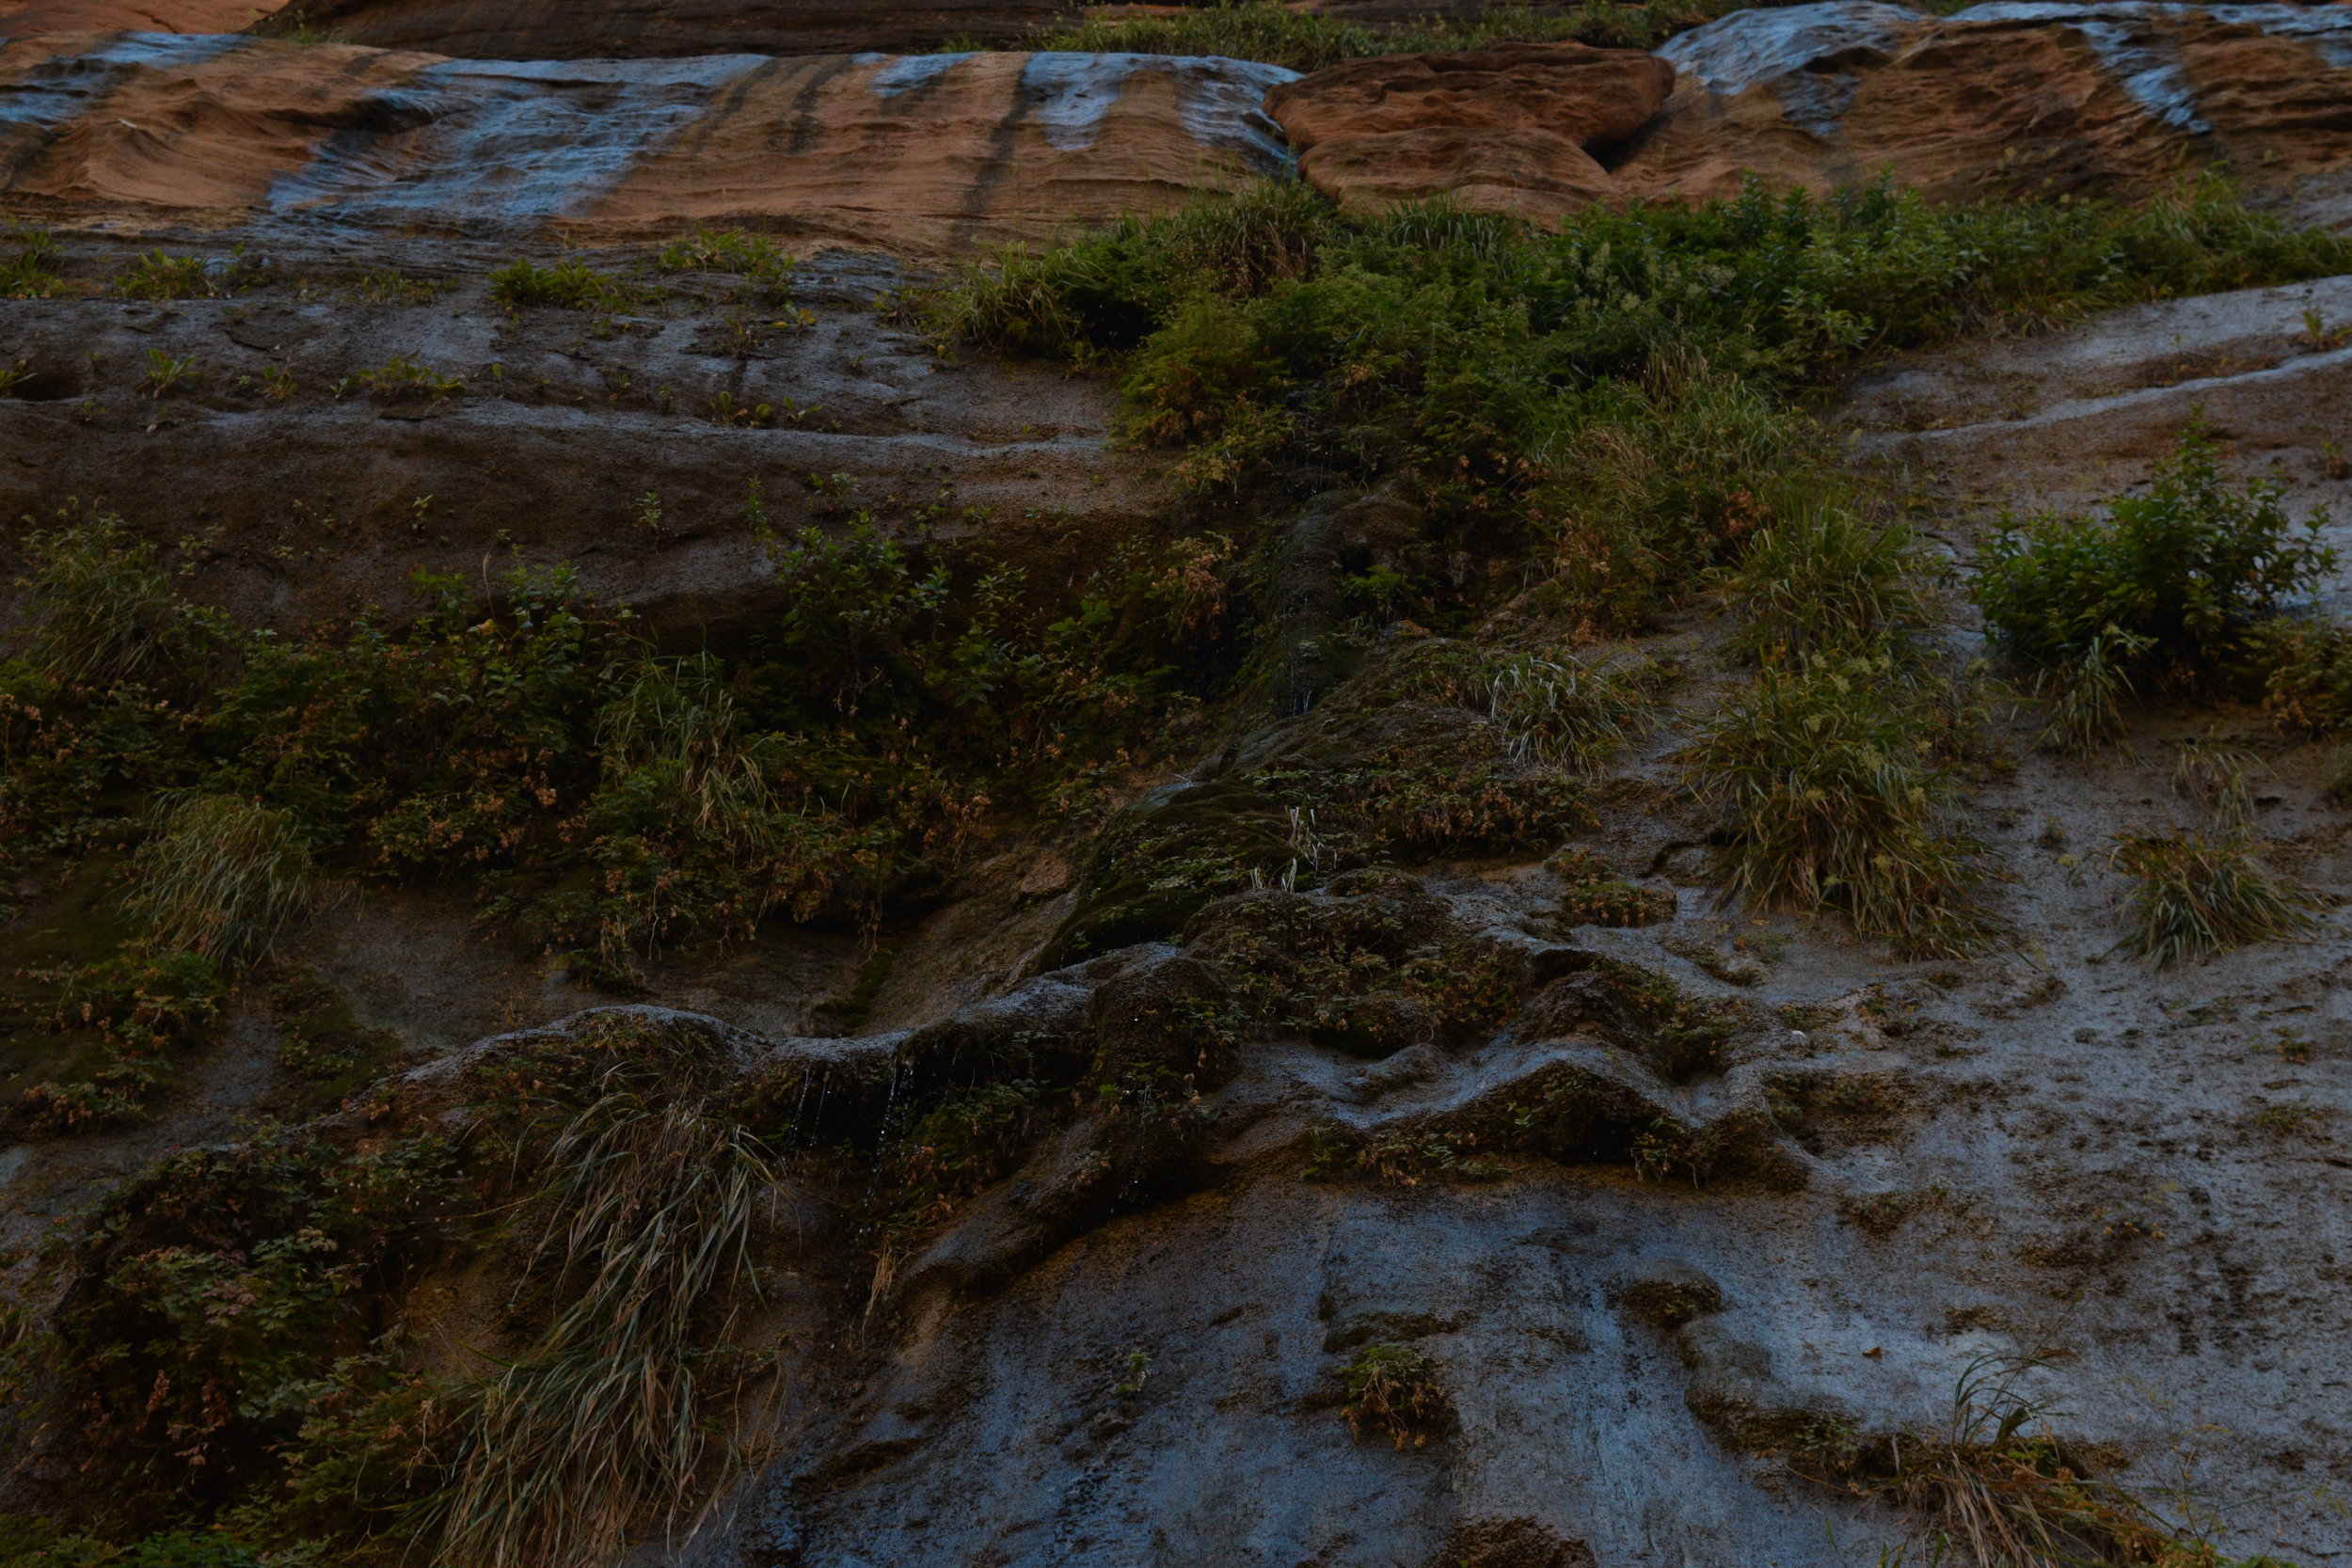 A shot of the 'Hanging Gardens' toward the mouth of the canyon.